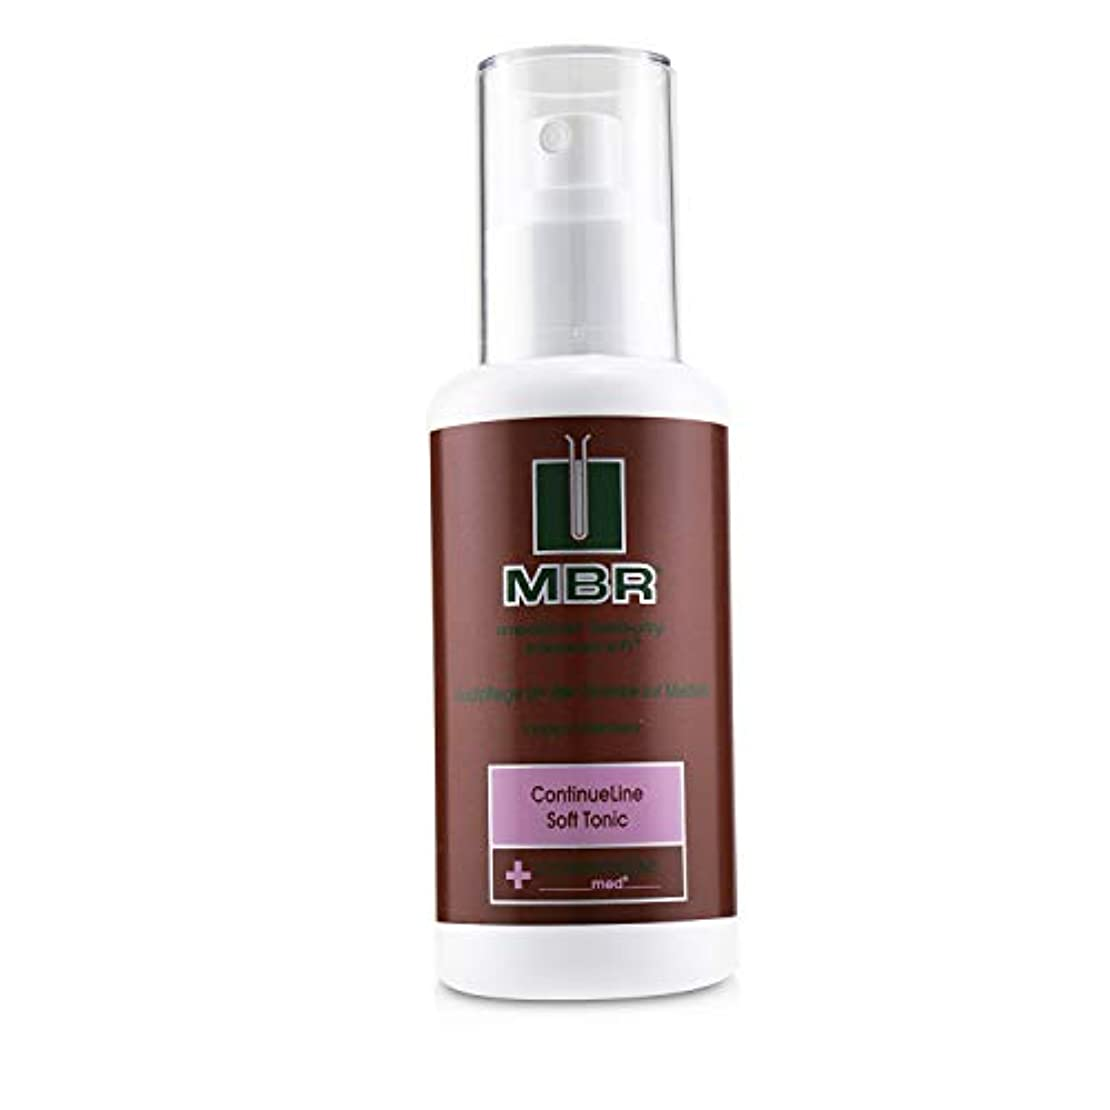 クスコ集計征服者MBR Medical Beauty Research ContinueLine Med ContinueLine Soft Tonic 150ml/5.1oz並行輸入品